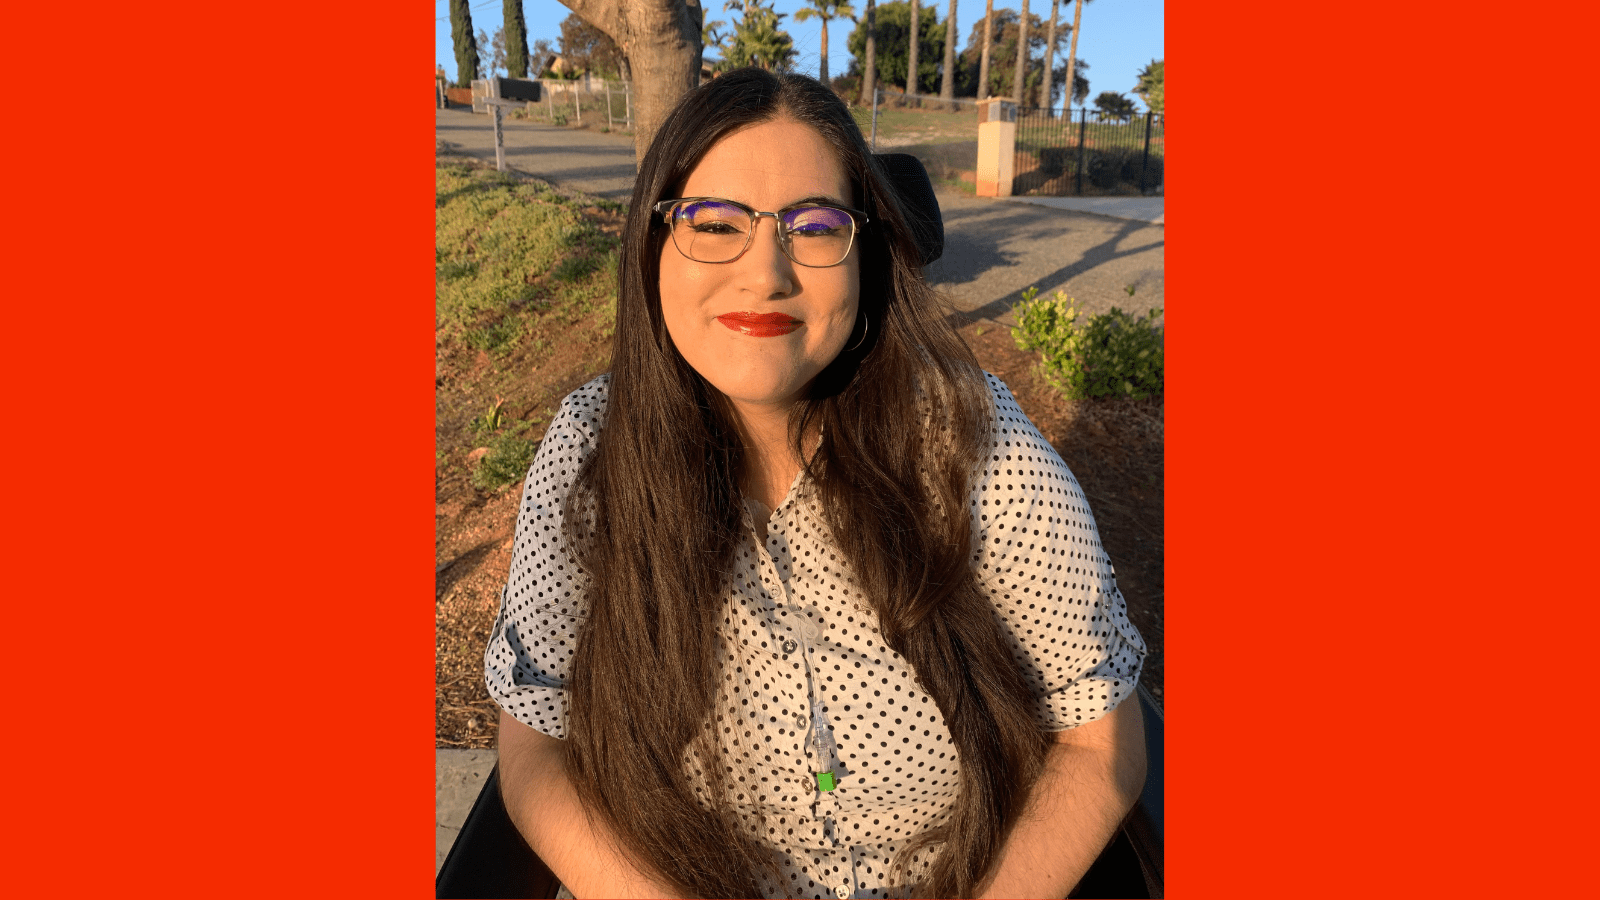 Graphic with a red background with a photo of Alena Morales, a Mexican Filipina woman, sitting in her wheelchair among San Diego palm trees. Her long brown hair is styled down around her shoulders, and she dons red lipstick with winged eyeliner. She is wearing a white button up shirt with black polka dots, and her central line hangs out from the neckline of her shirt.